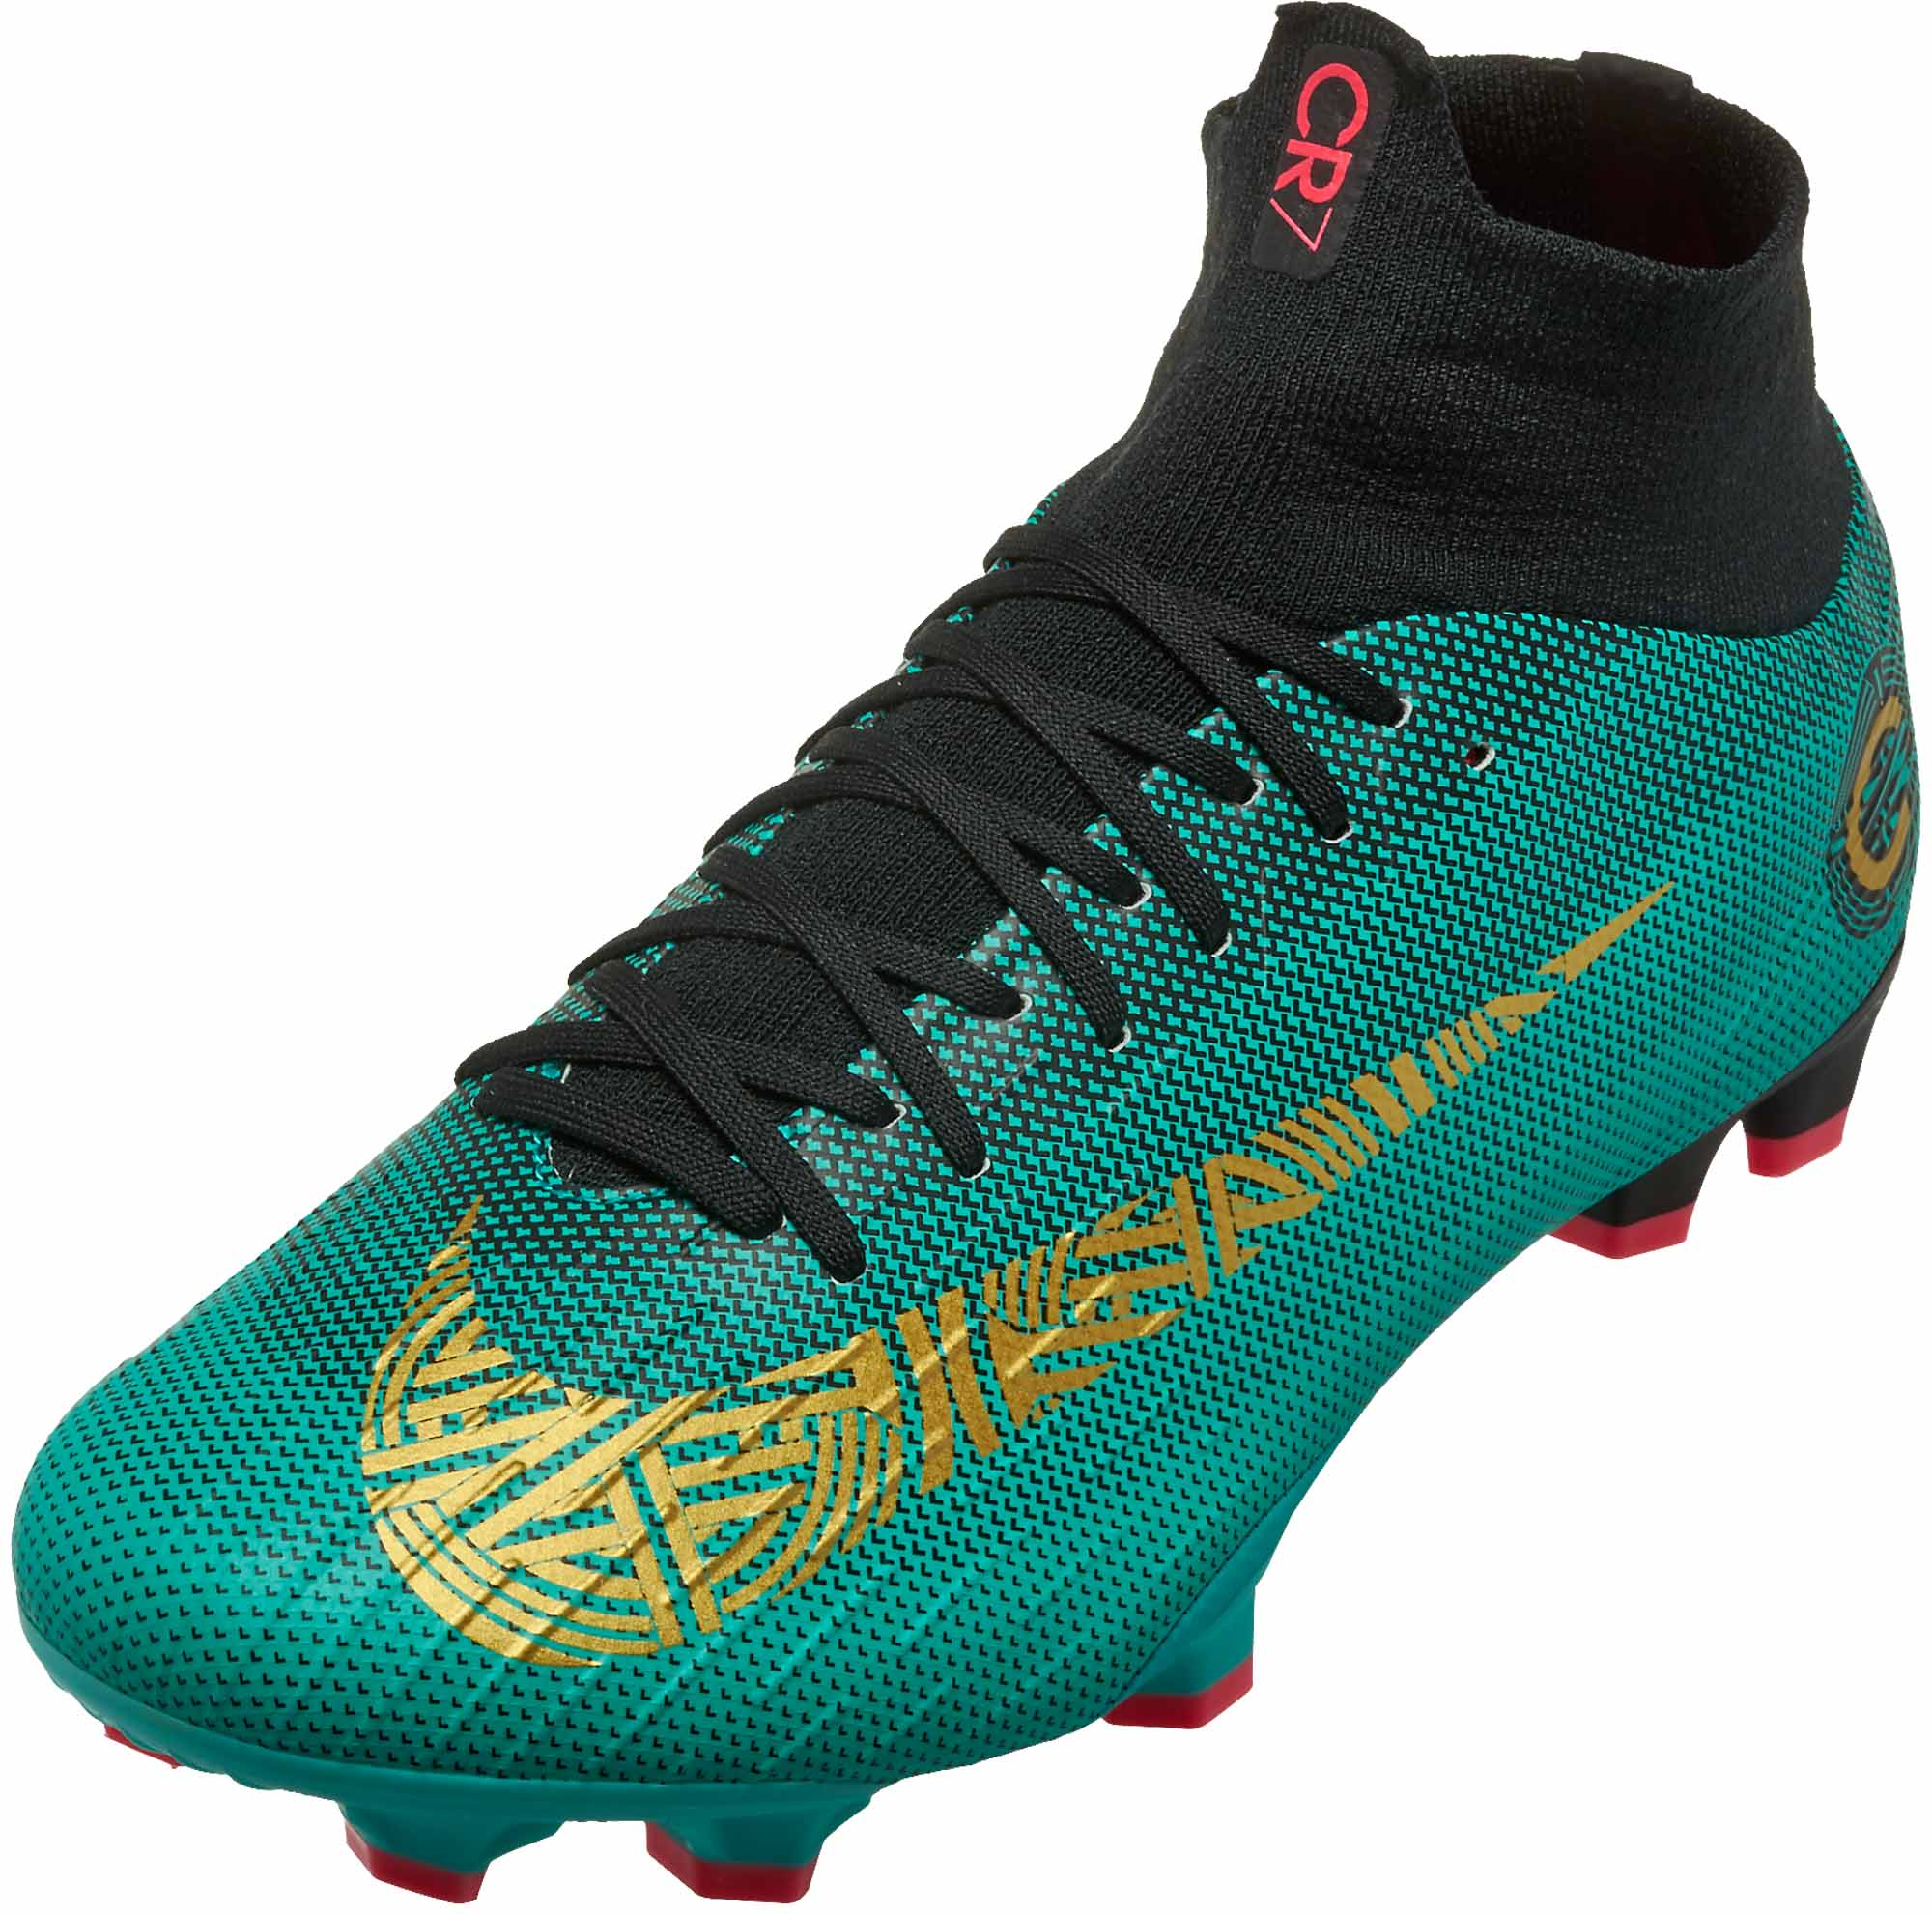 Nike Mercurial Superfly 6 Pro FG – CR7 – Clear Jade   Metallic Vivid Gold 8ca26c9212ec